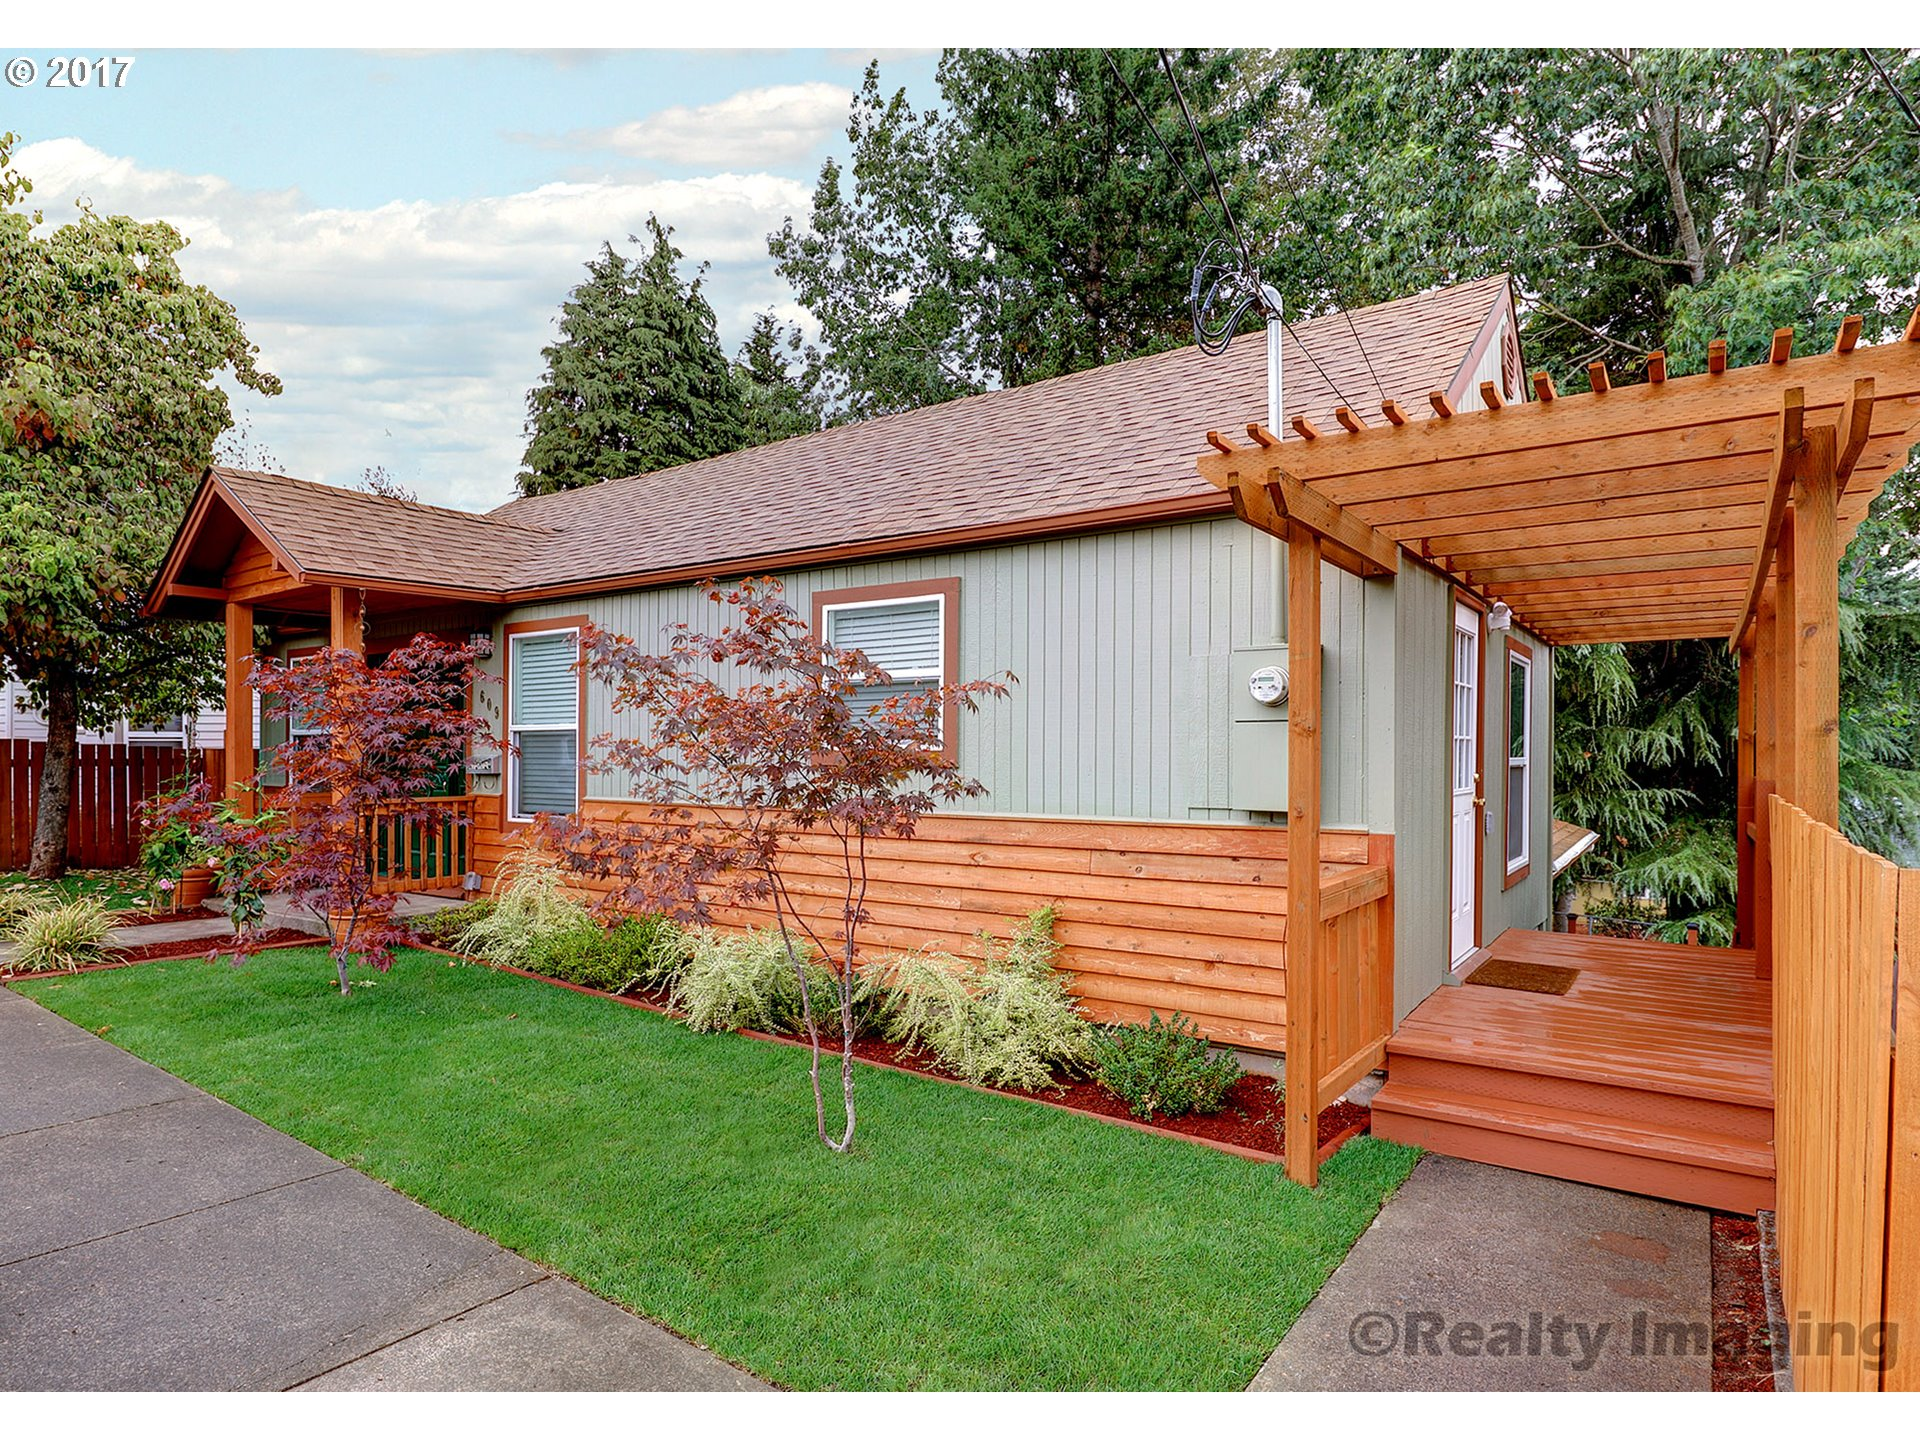 609 MOUNT HOOD ST, Oregon City, OR 97045